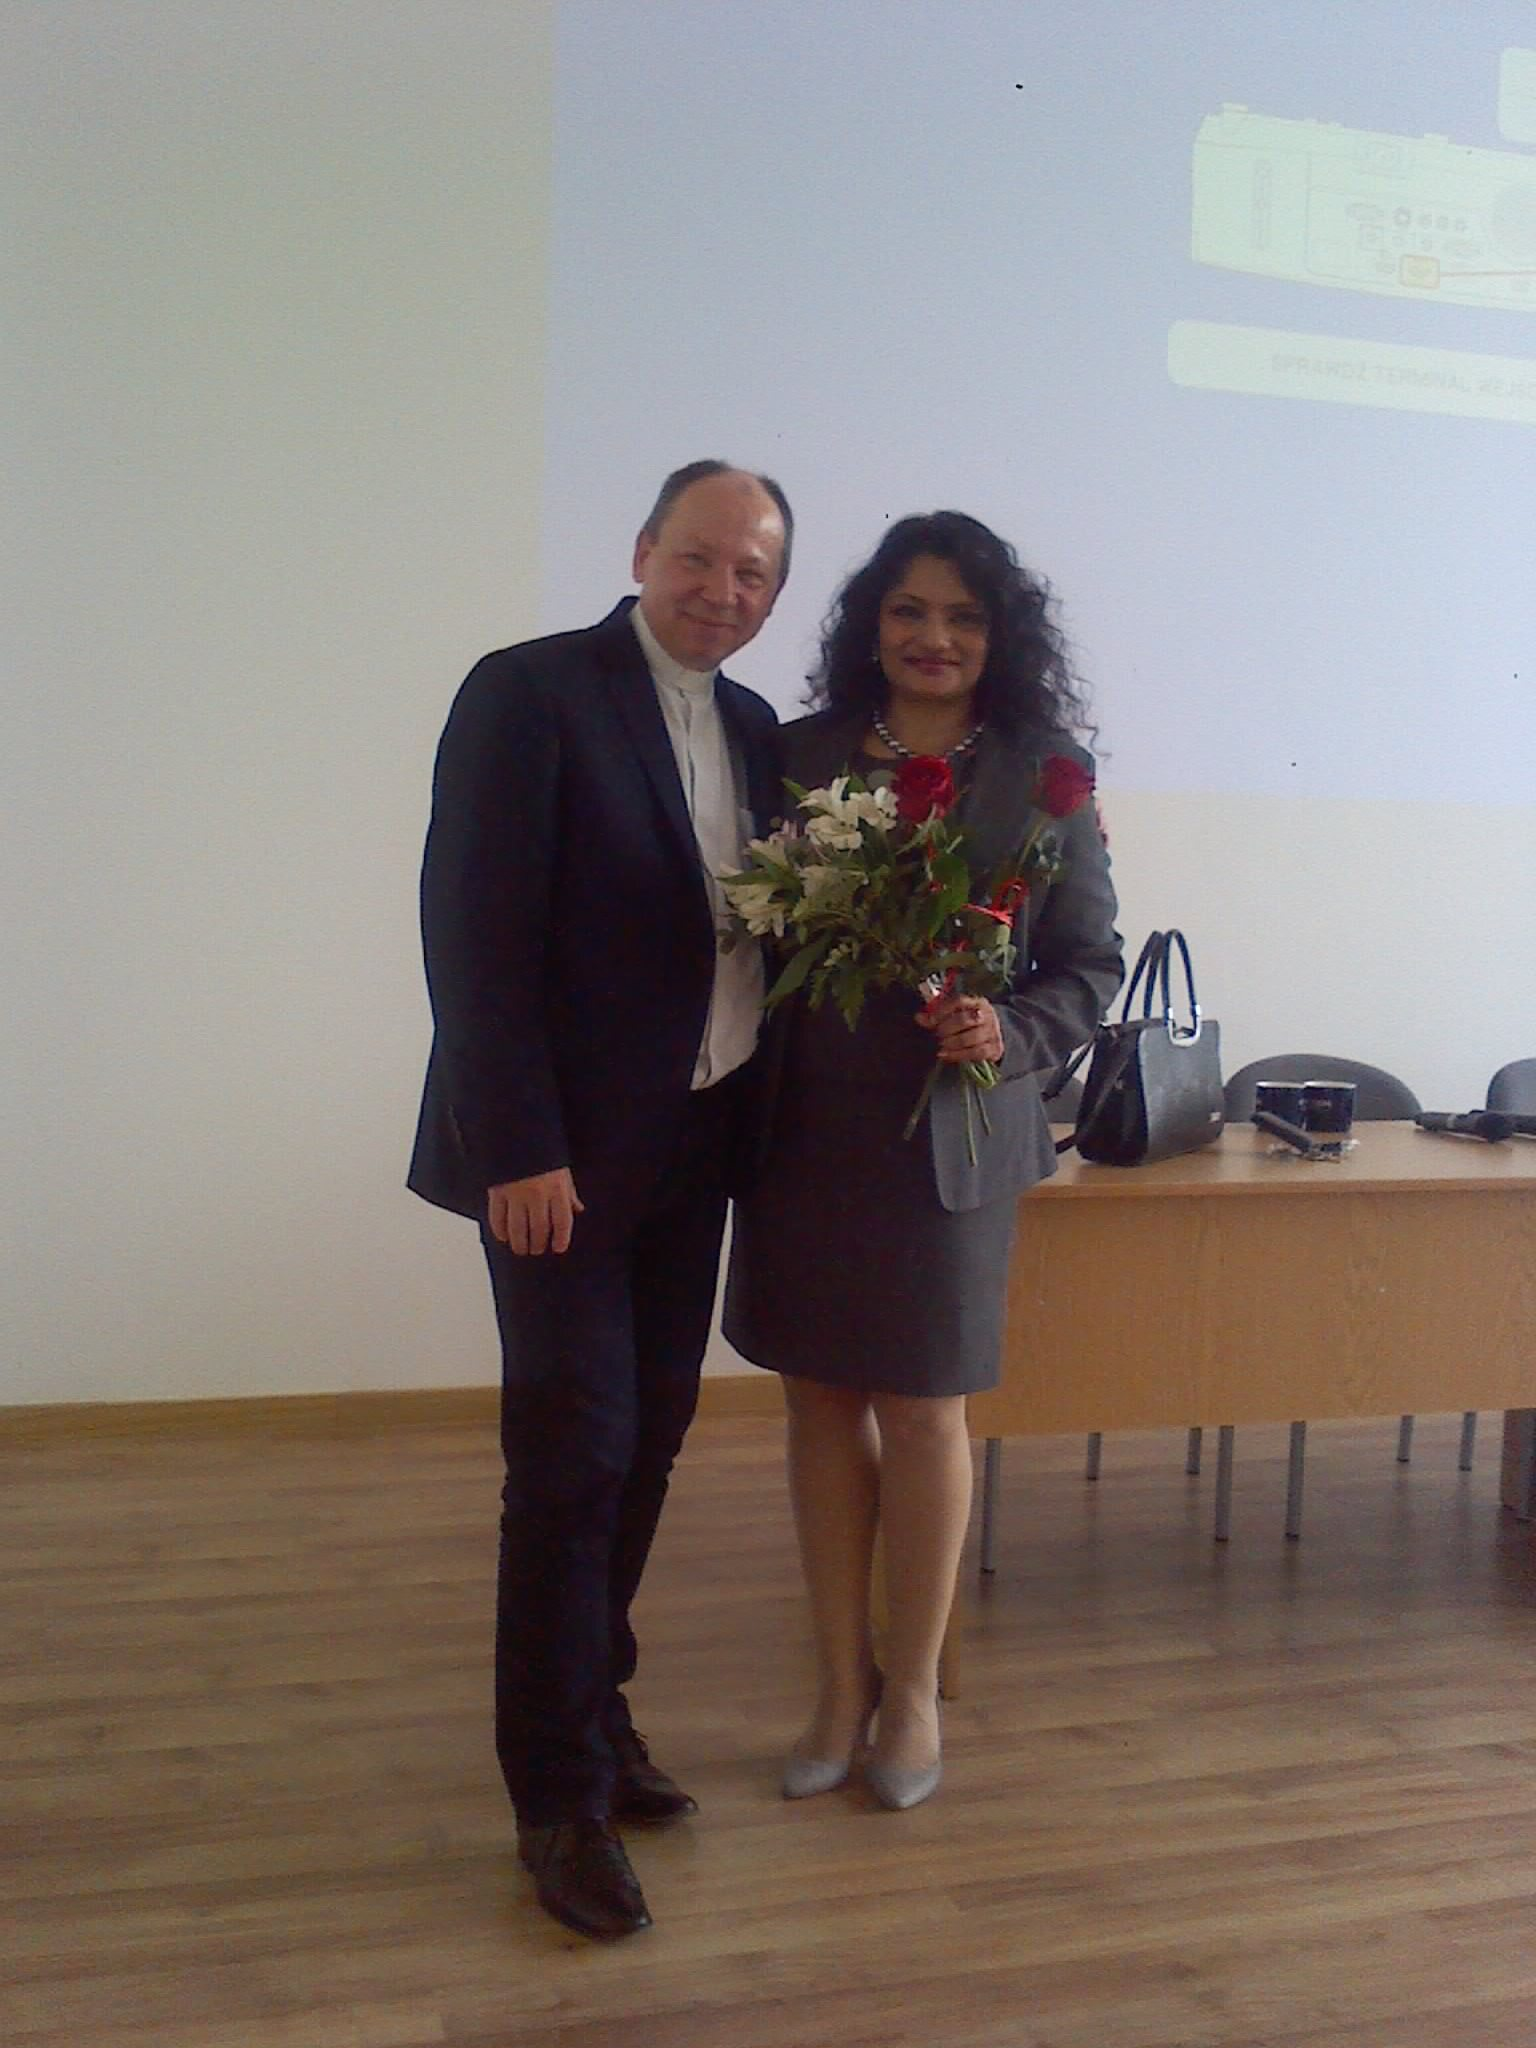 Rumu Sarkar with Father Bronski, her Fulbright sponsor at the law school in Poland